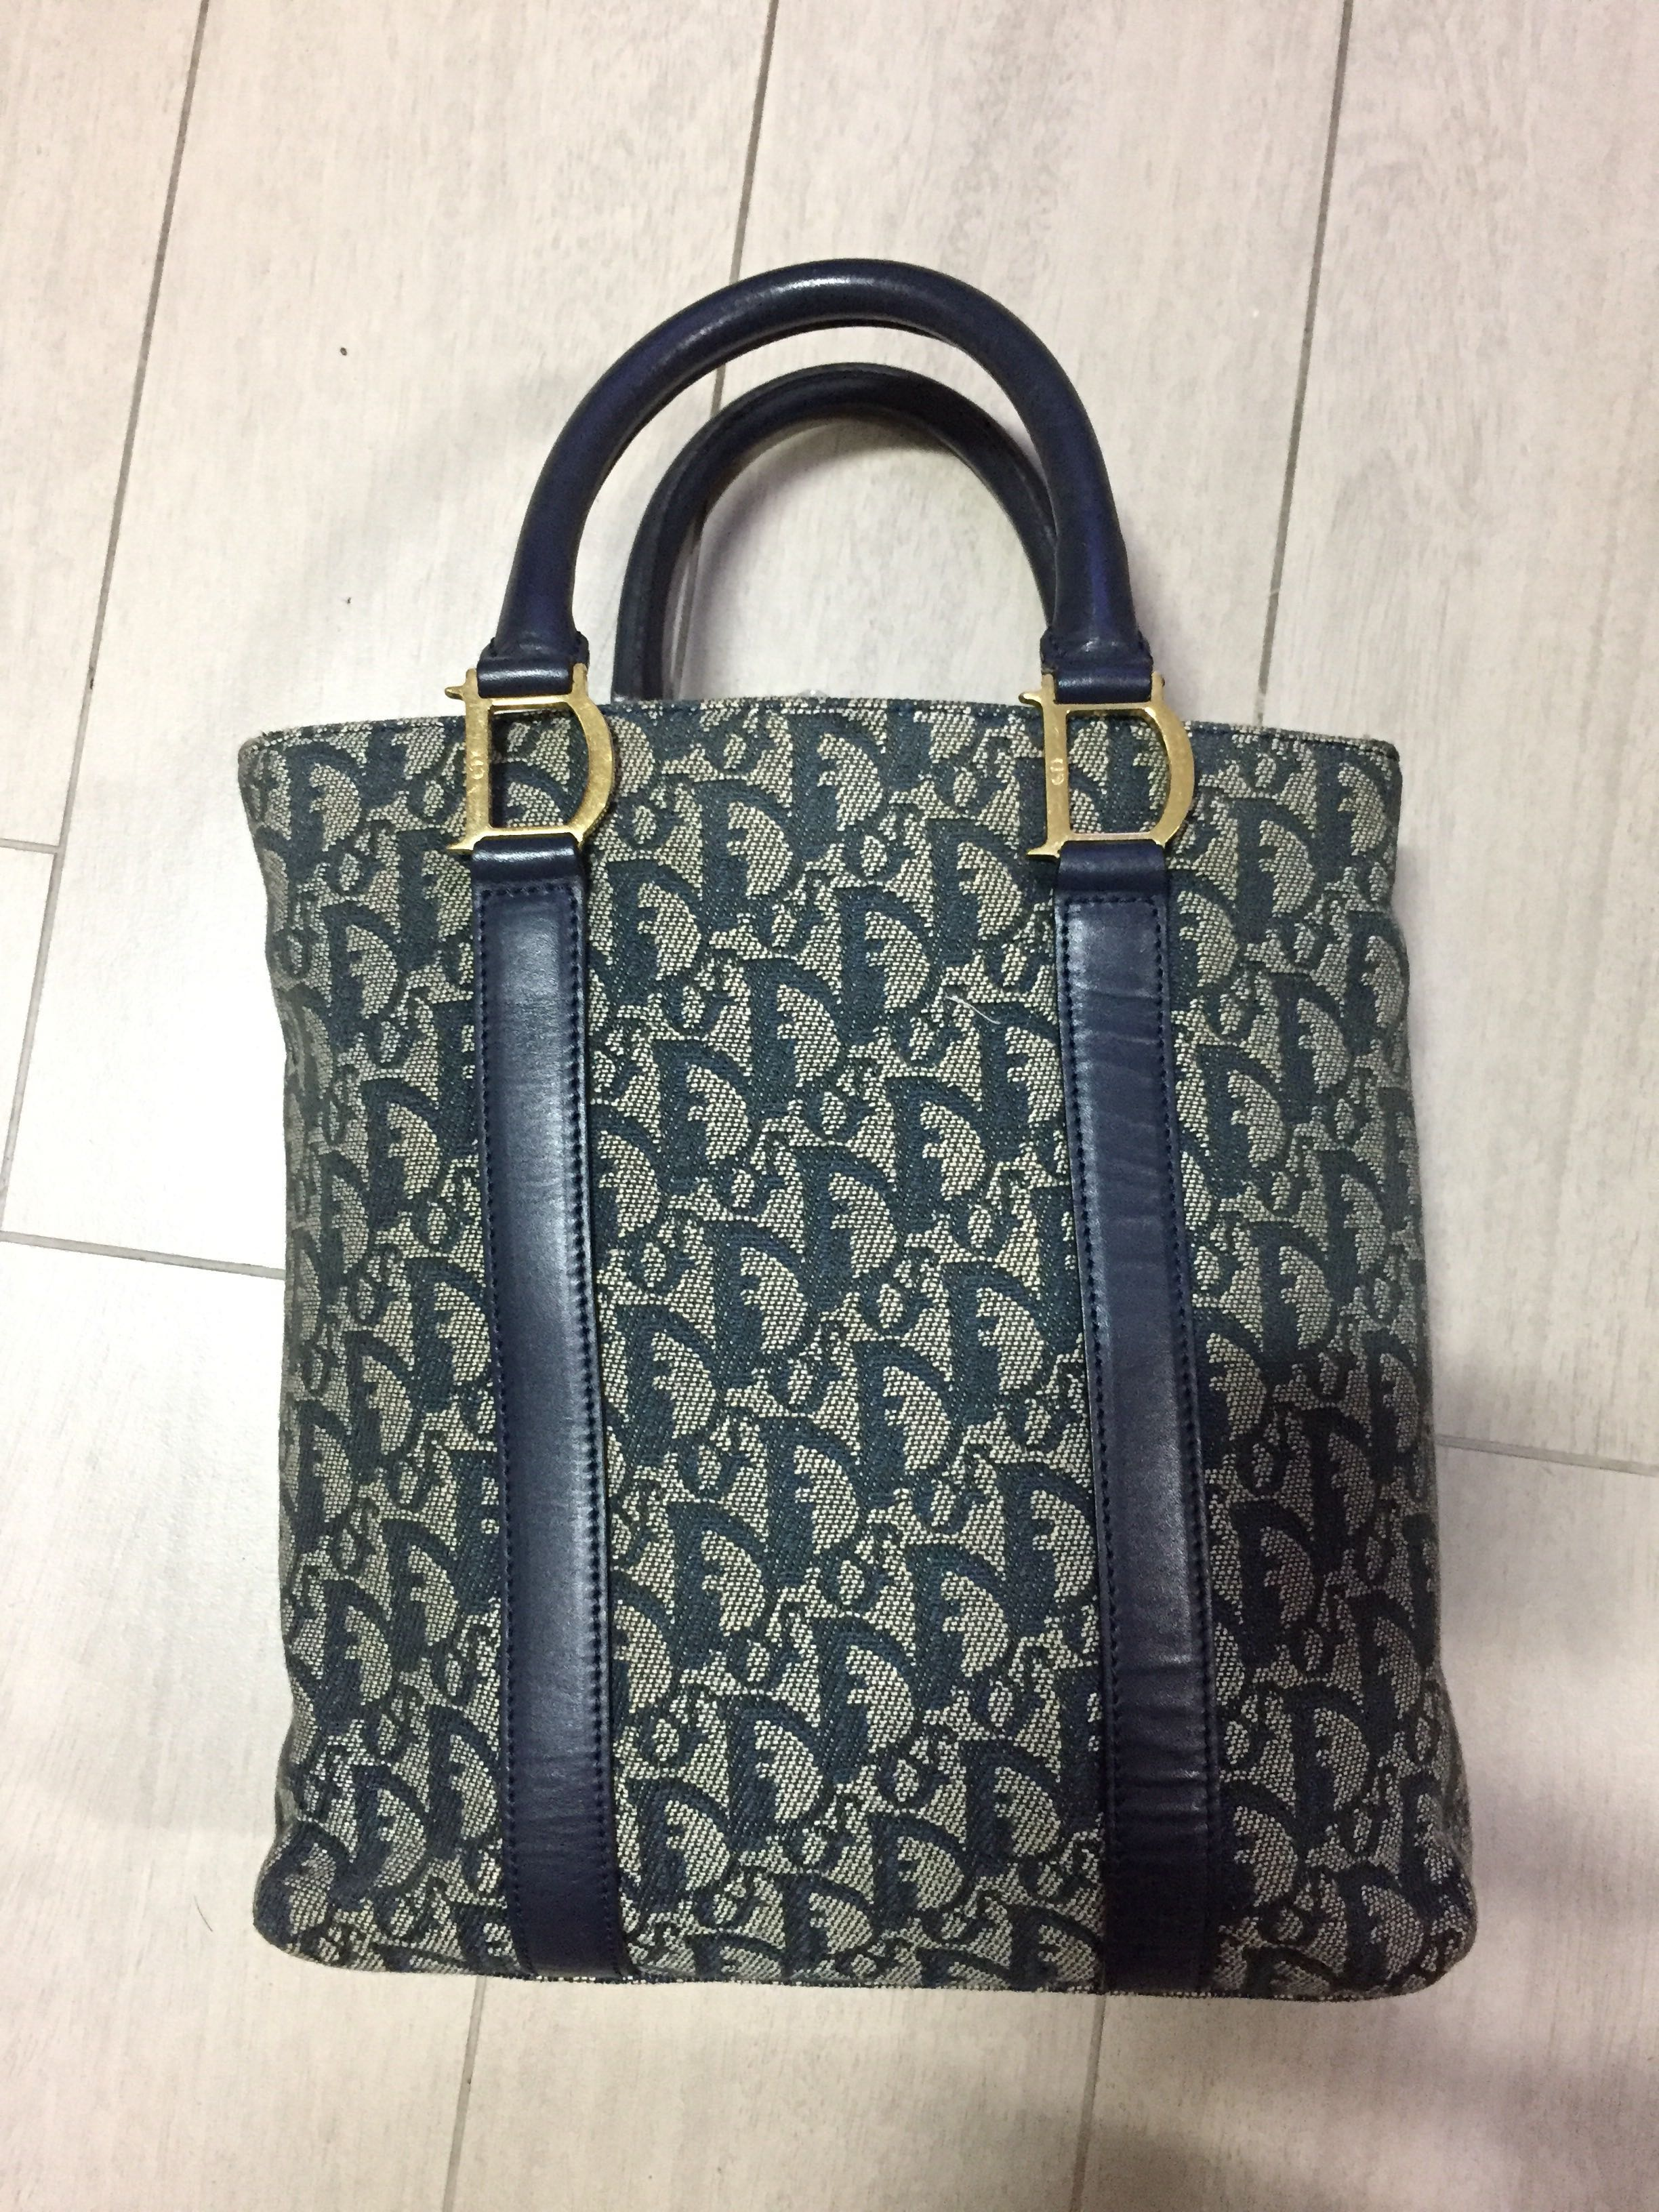 28e01c3a8 Authentic Christian Dior Monogram Canvas Tote Bag, Women's Fashion, Bags &  Wallets, Handbags on Carousell